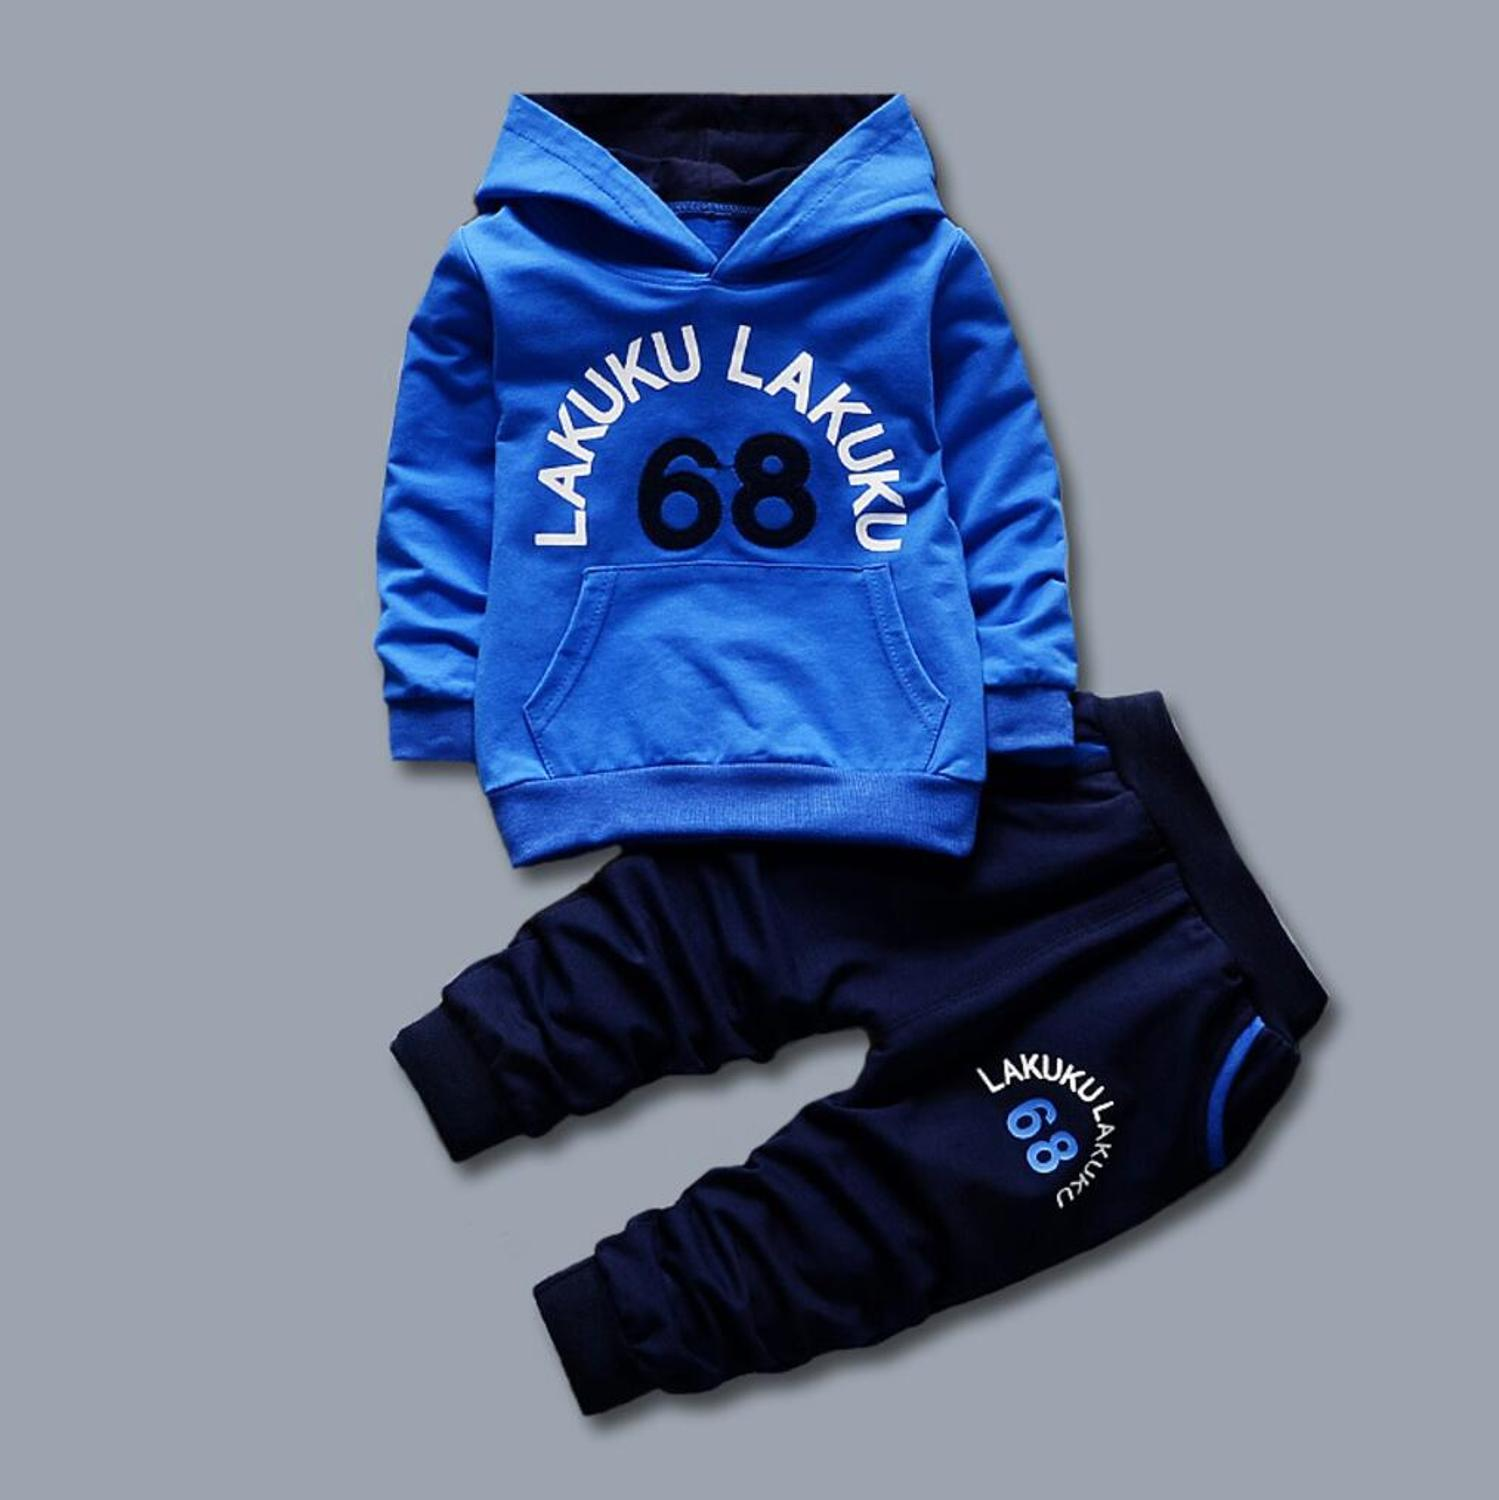 2PCS Kids Toddler Baby Boy Suit Long Sleeve Hooded Tops T-shirt+Pants Tracksuit